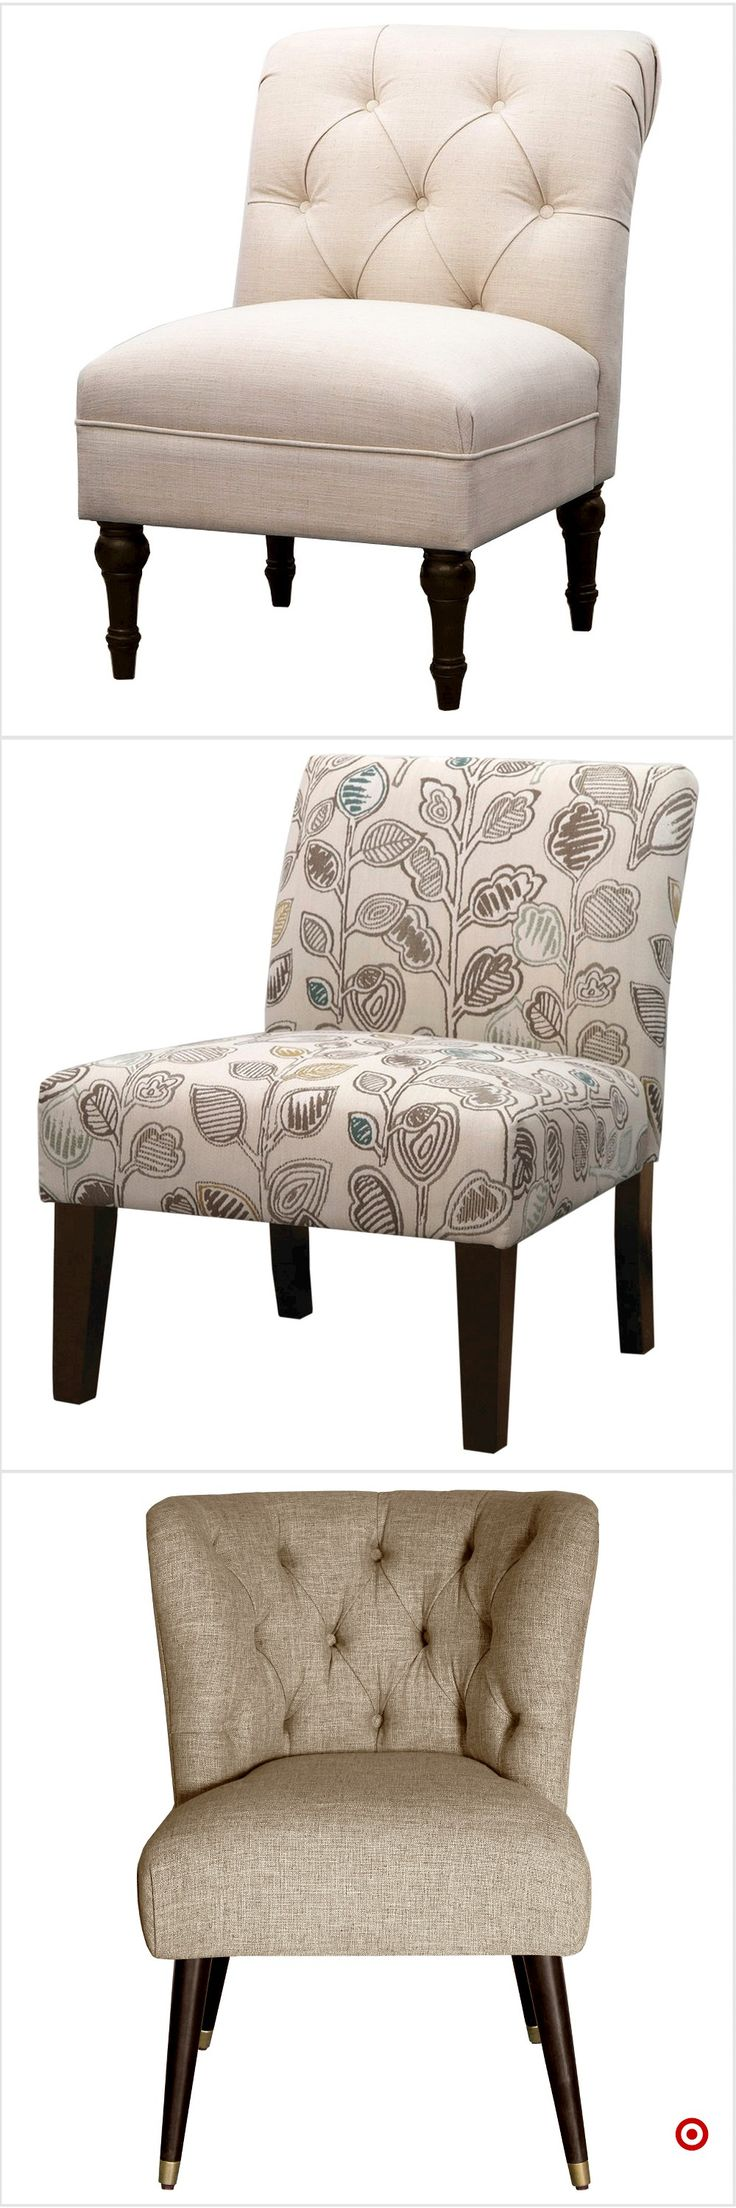 shop target for slipper chairs you will love at great low prices free shipping on